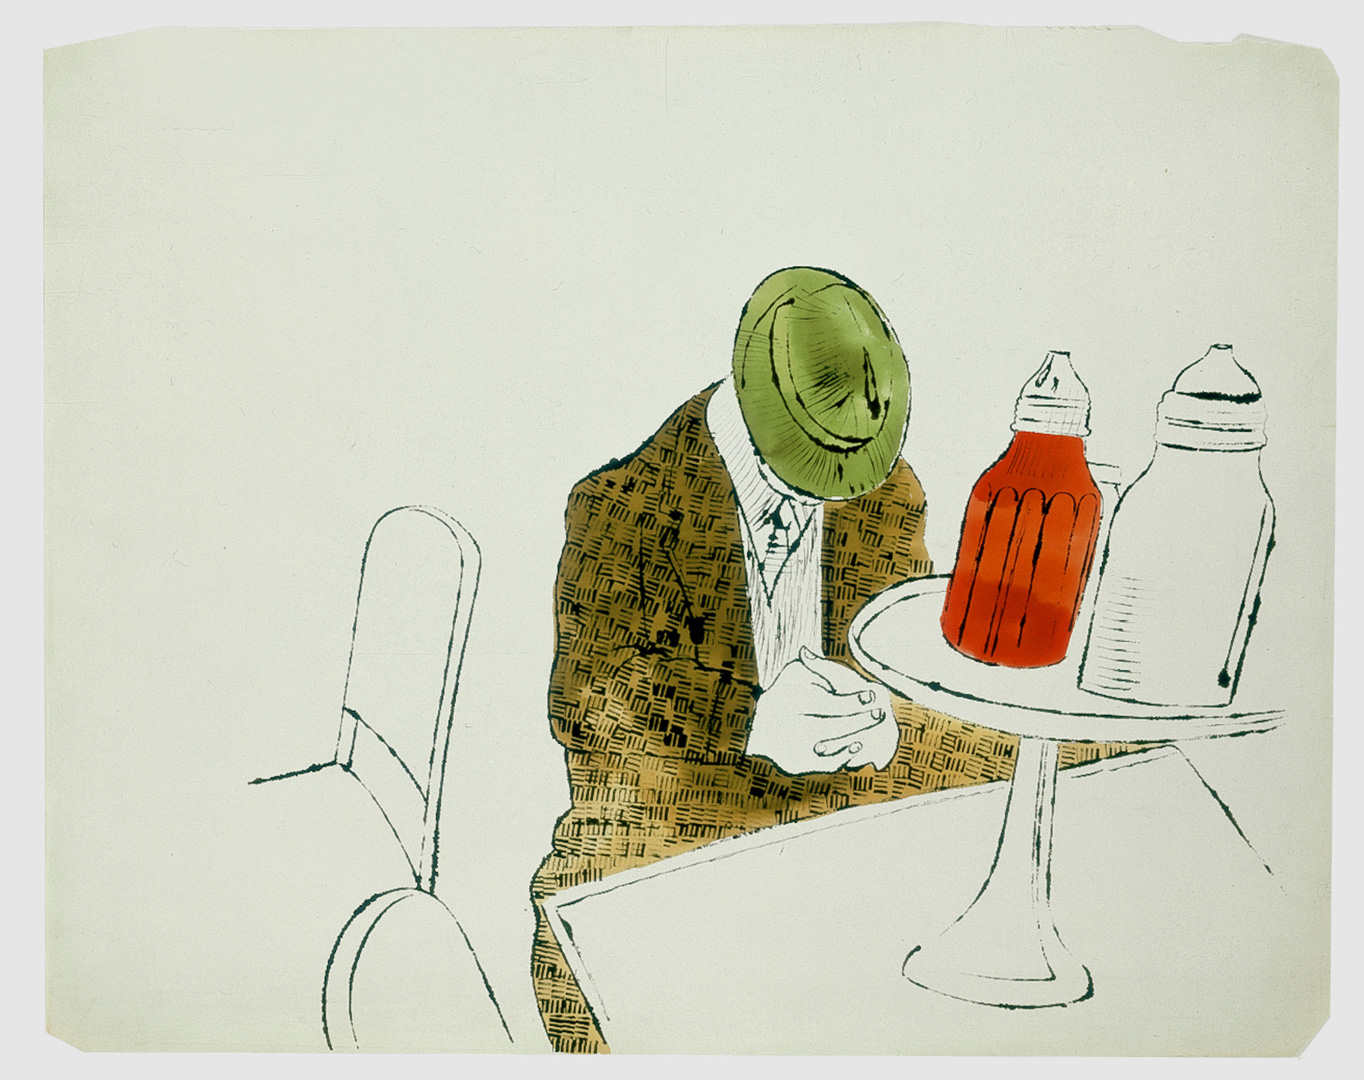 Andy Warhol - Male Seated at Automat Counter, 1958, ink and watercolor on paper